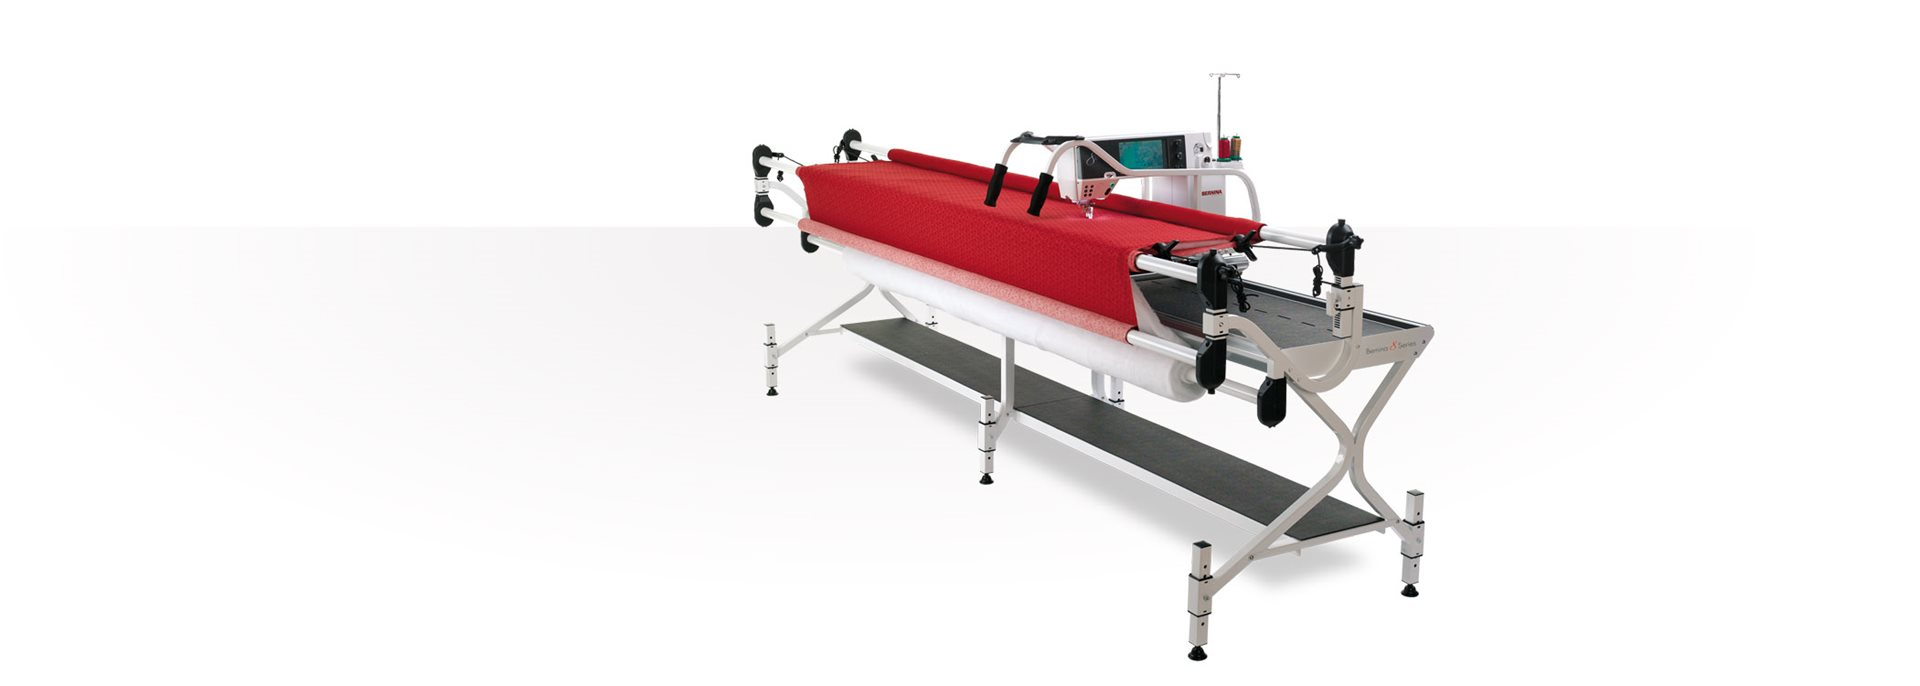 The Quilt Frame For Professional Quilting Projects Bernina